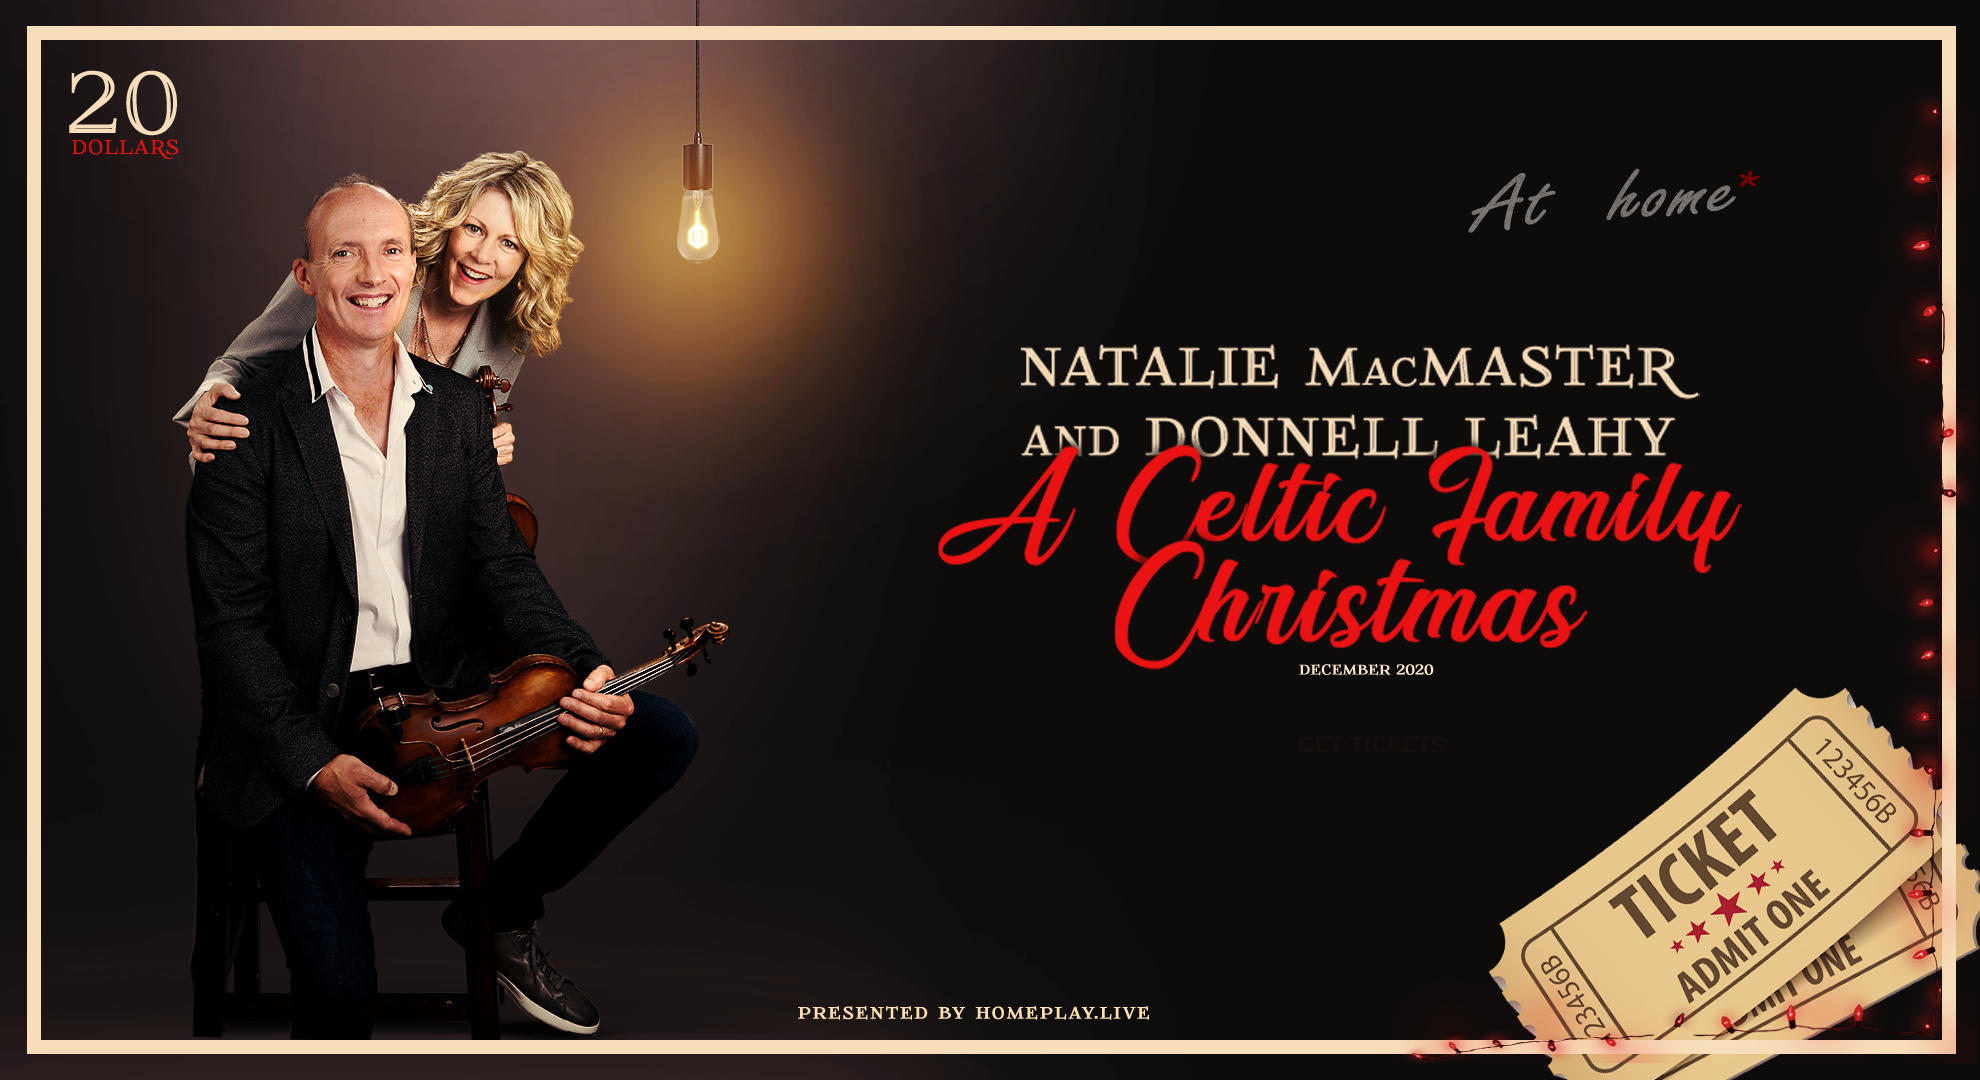 Natalie & Donnell's Celtic Family Christmas (at home!)